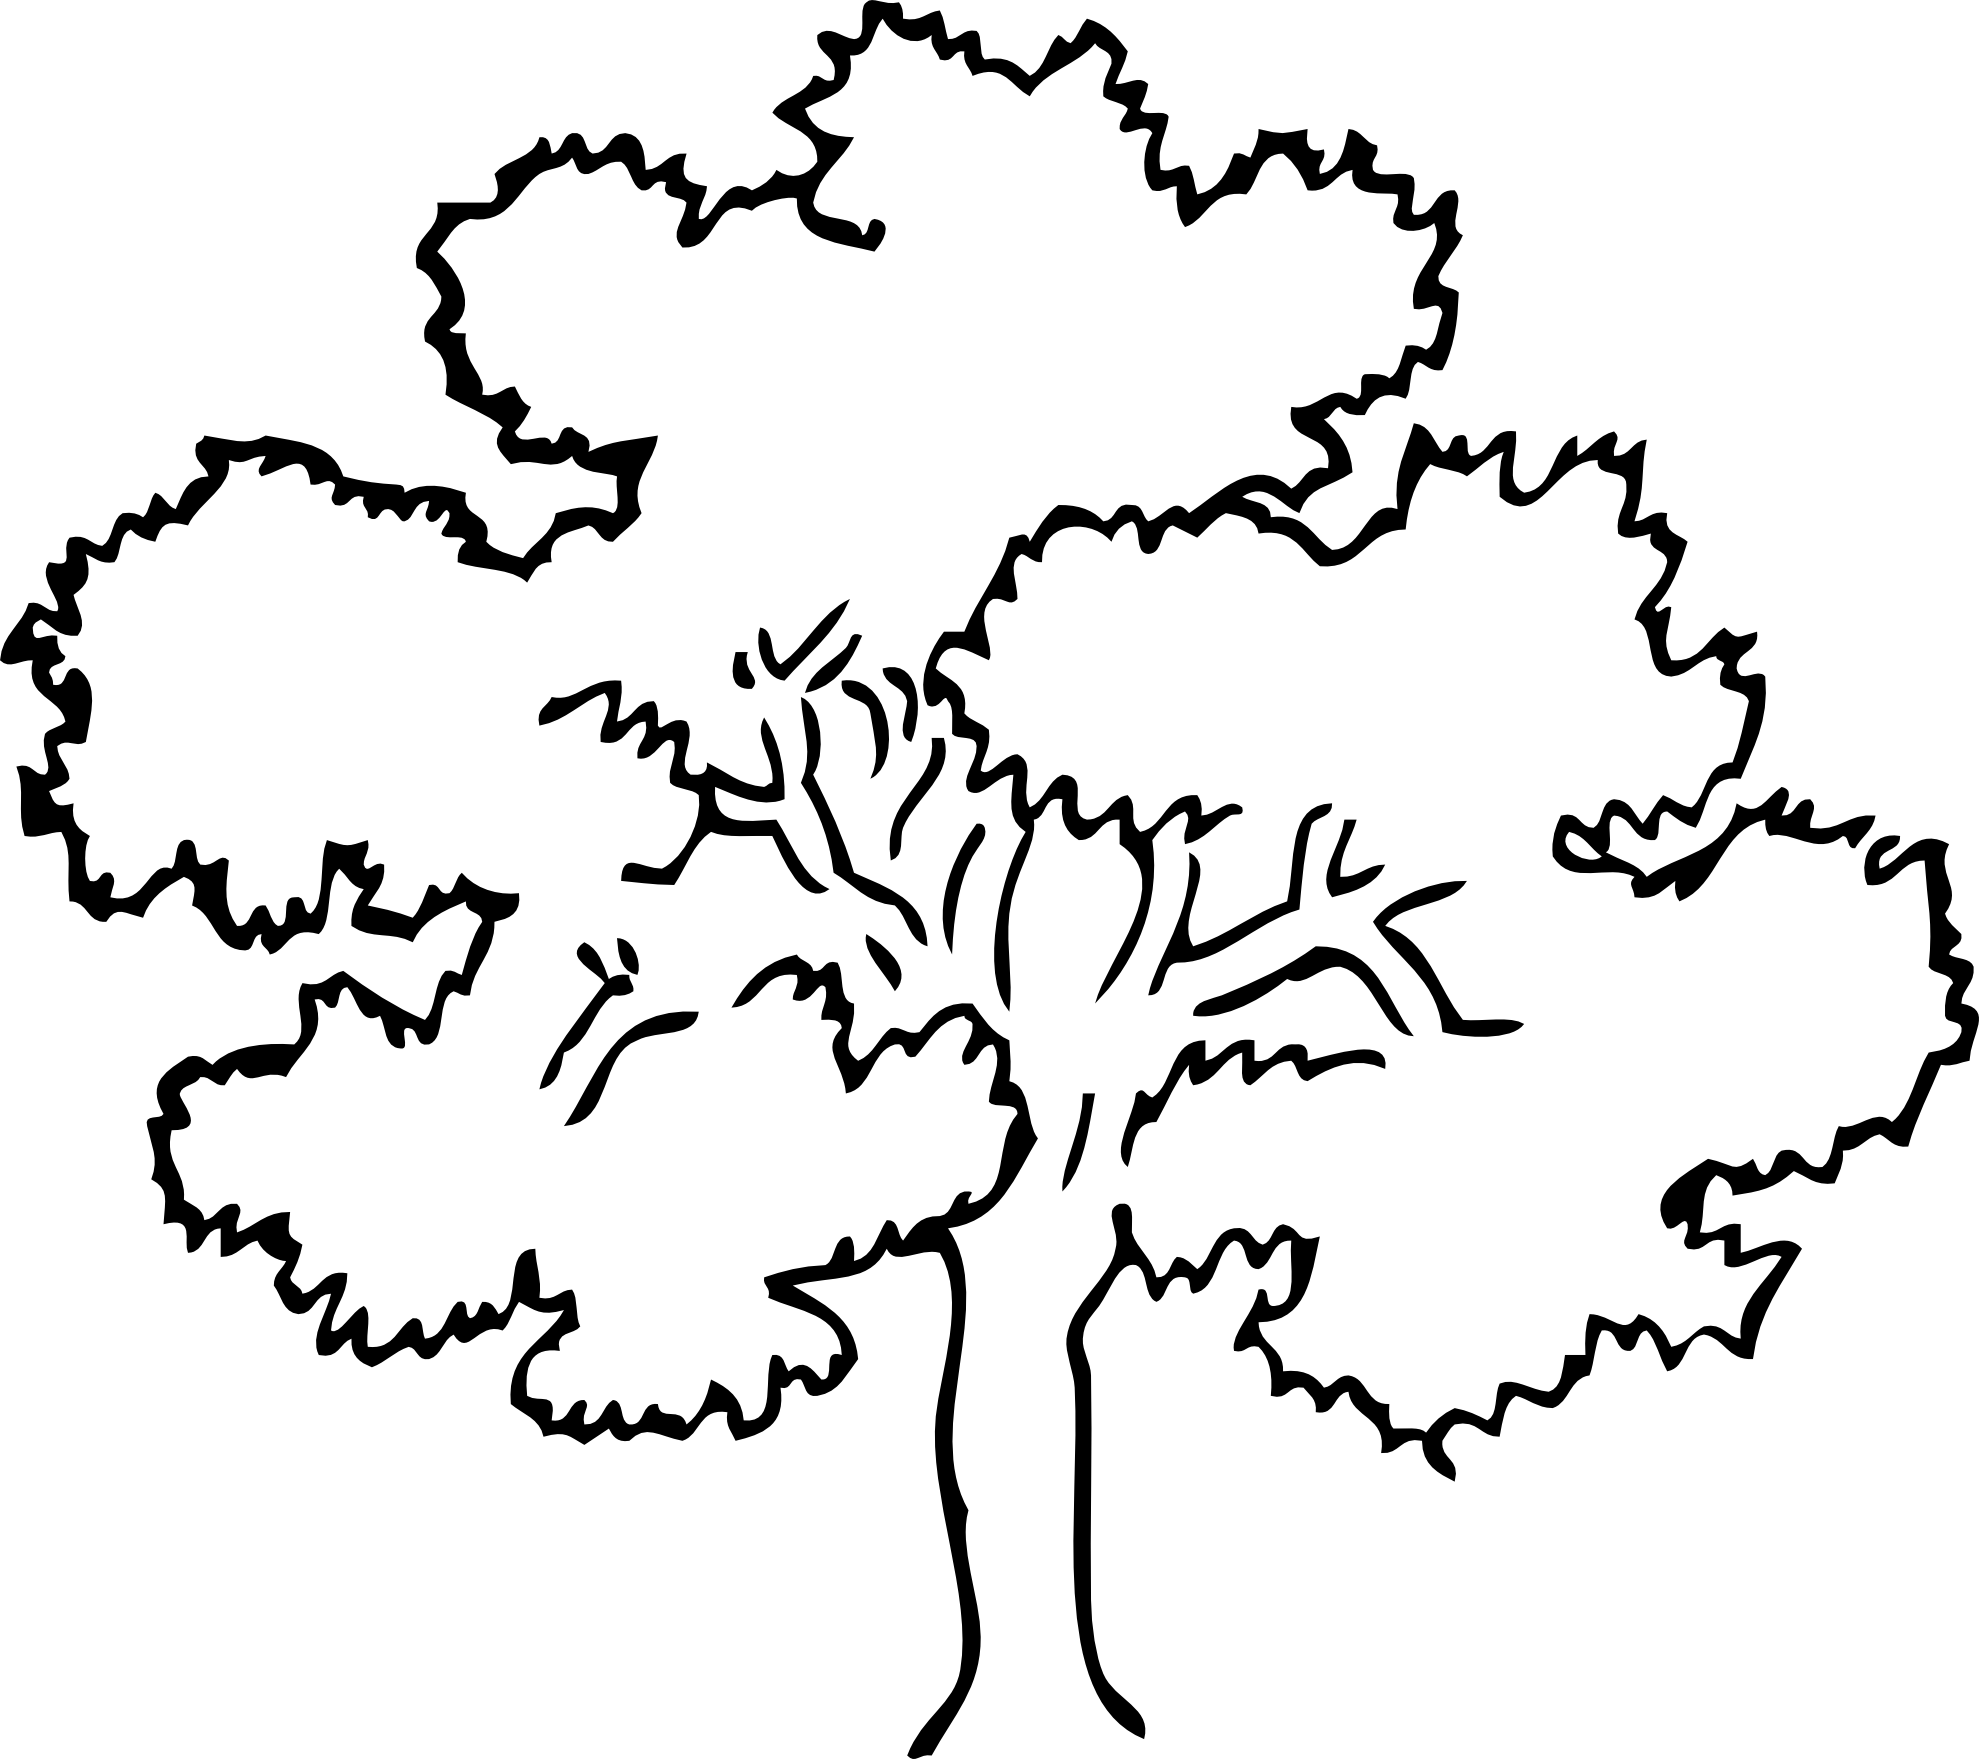 Tree Black And White Clipart.